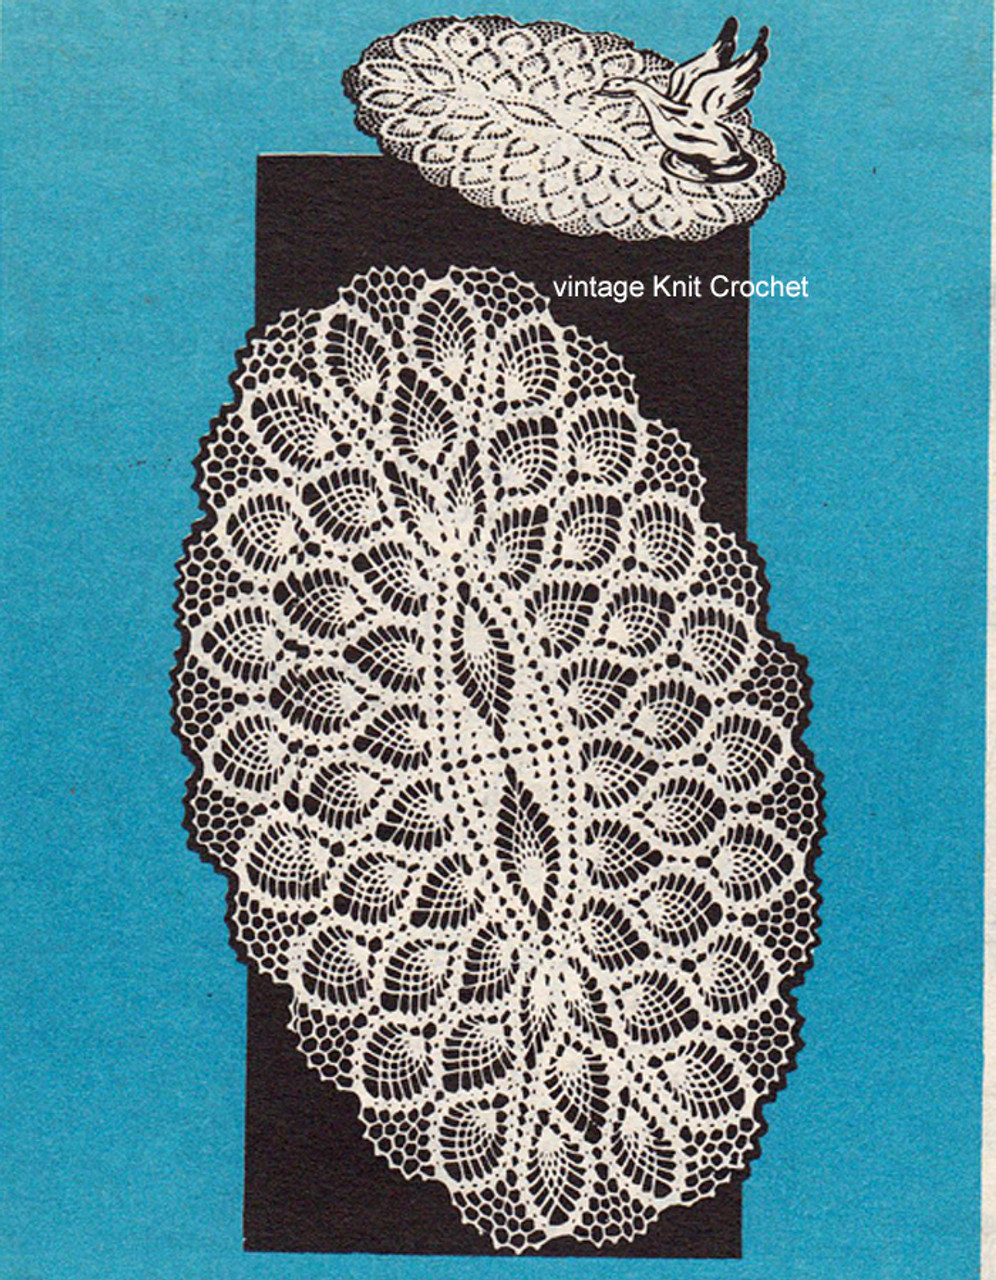 Mail Order 7336, Crochet Oval Pineapple Doily Pattern